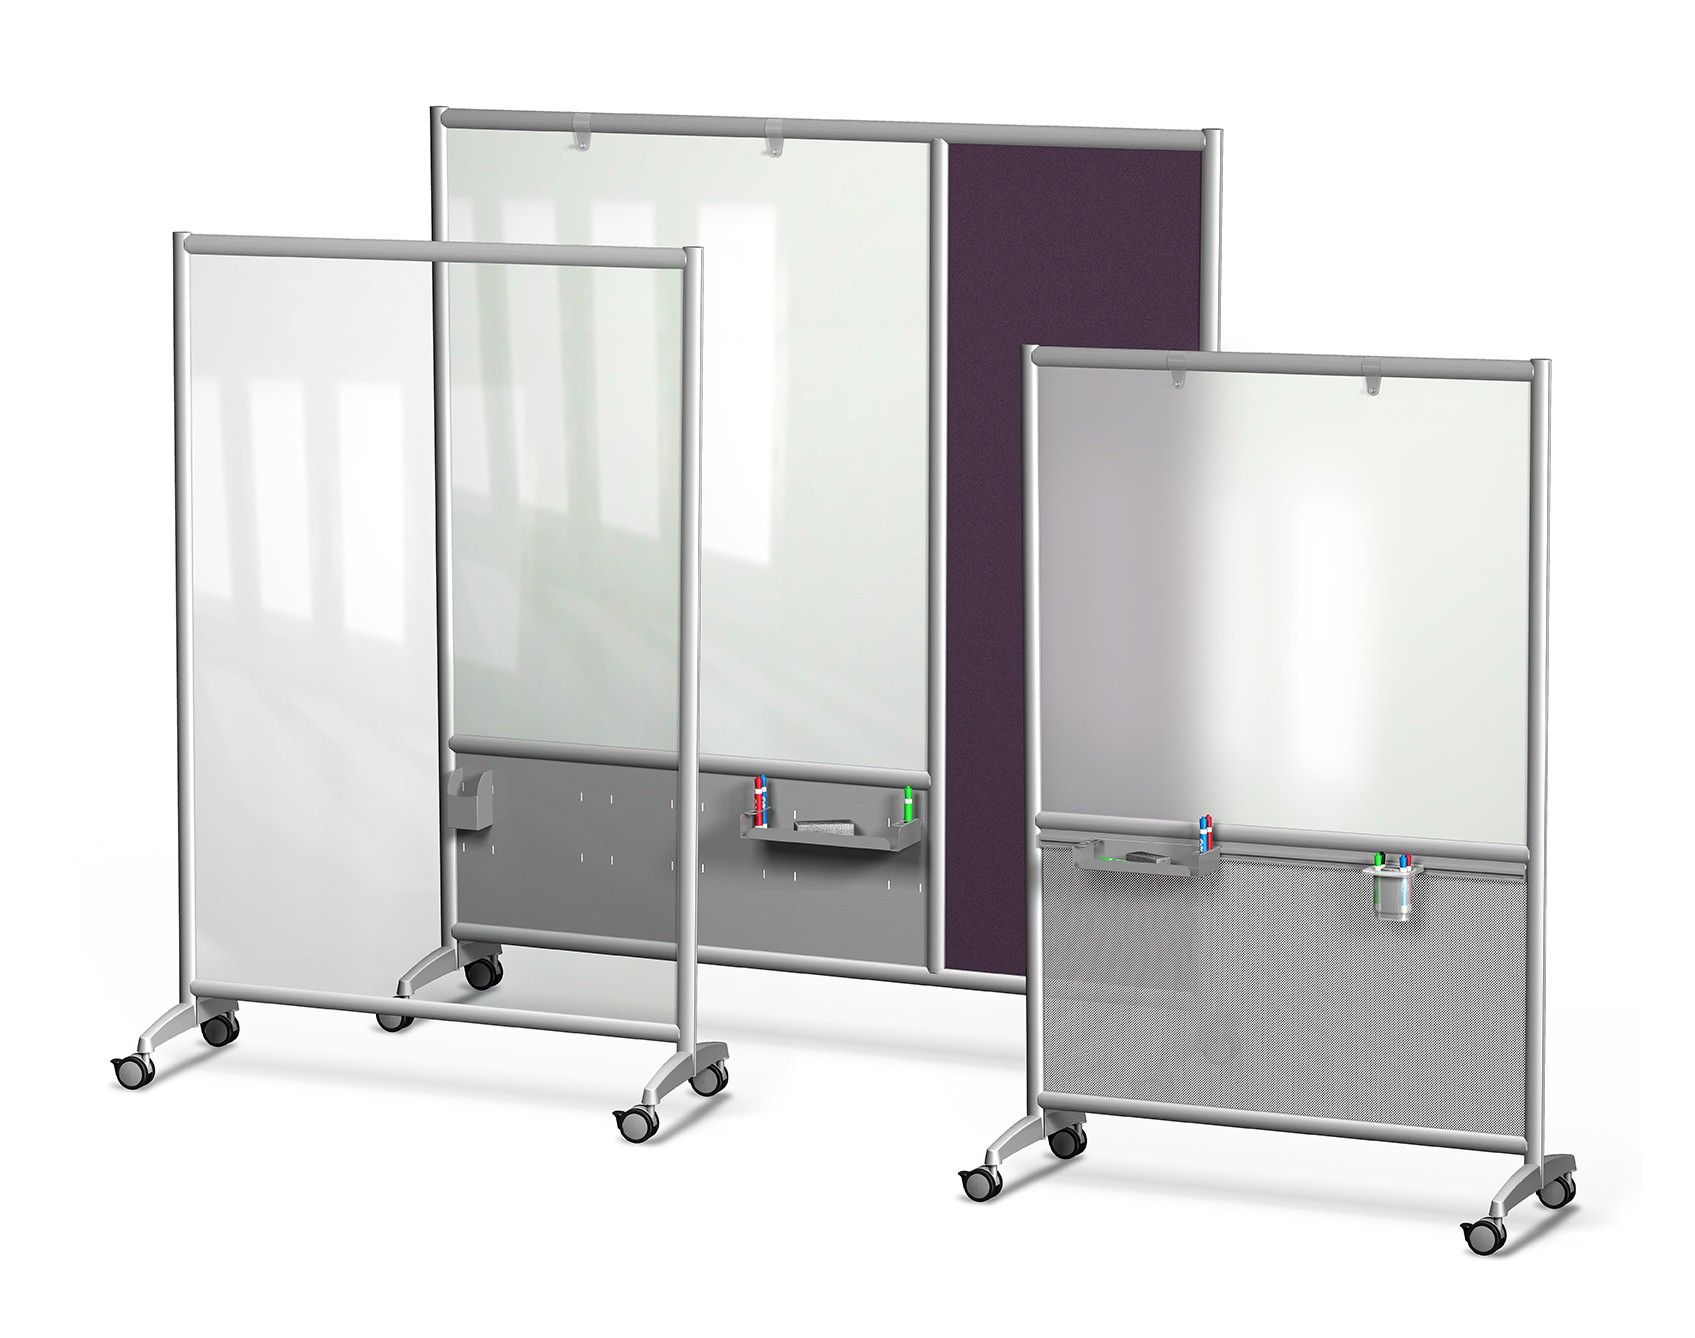 Mobile Glass Dry Erase Boards Available in clear frosted or white glass European design engineered to be easy to move and durable